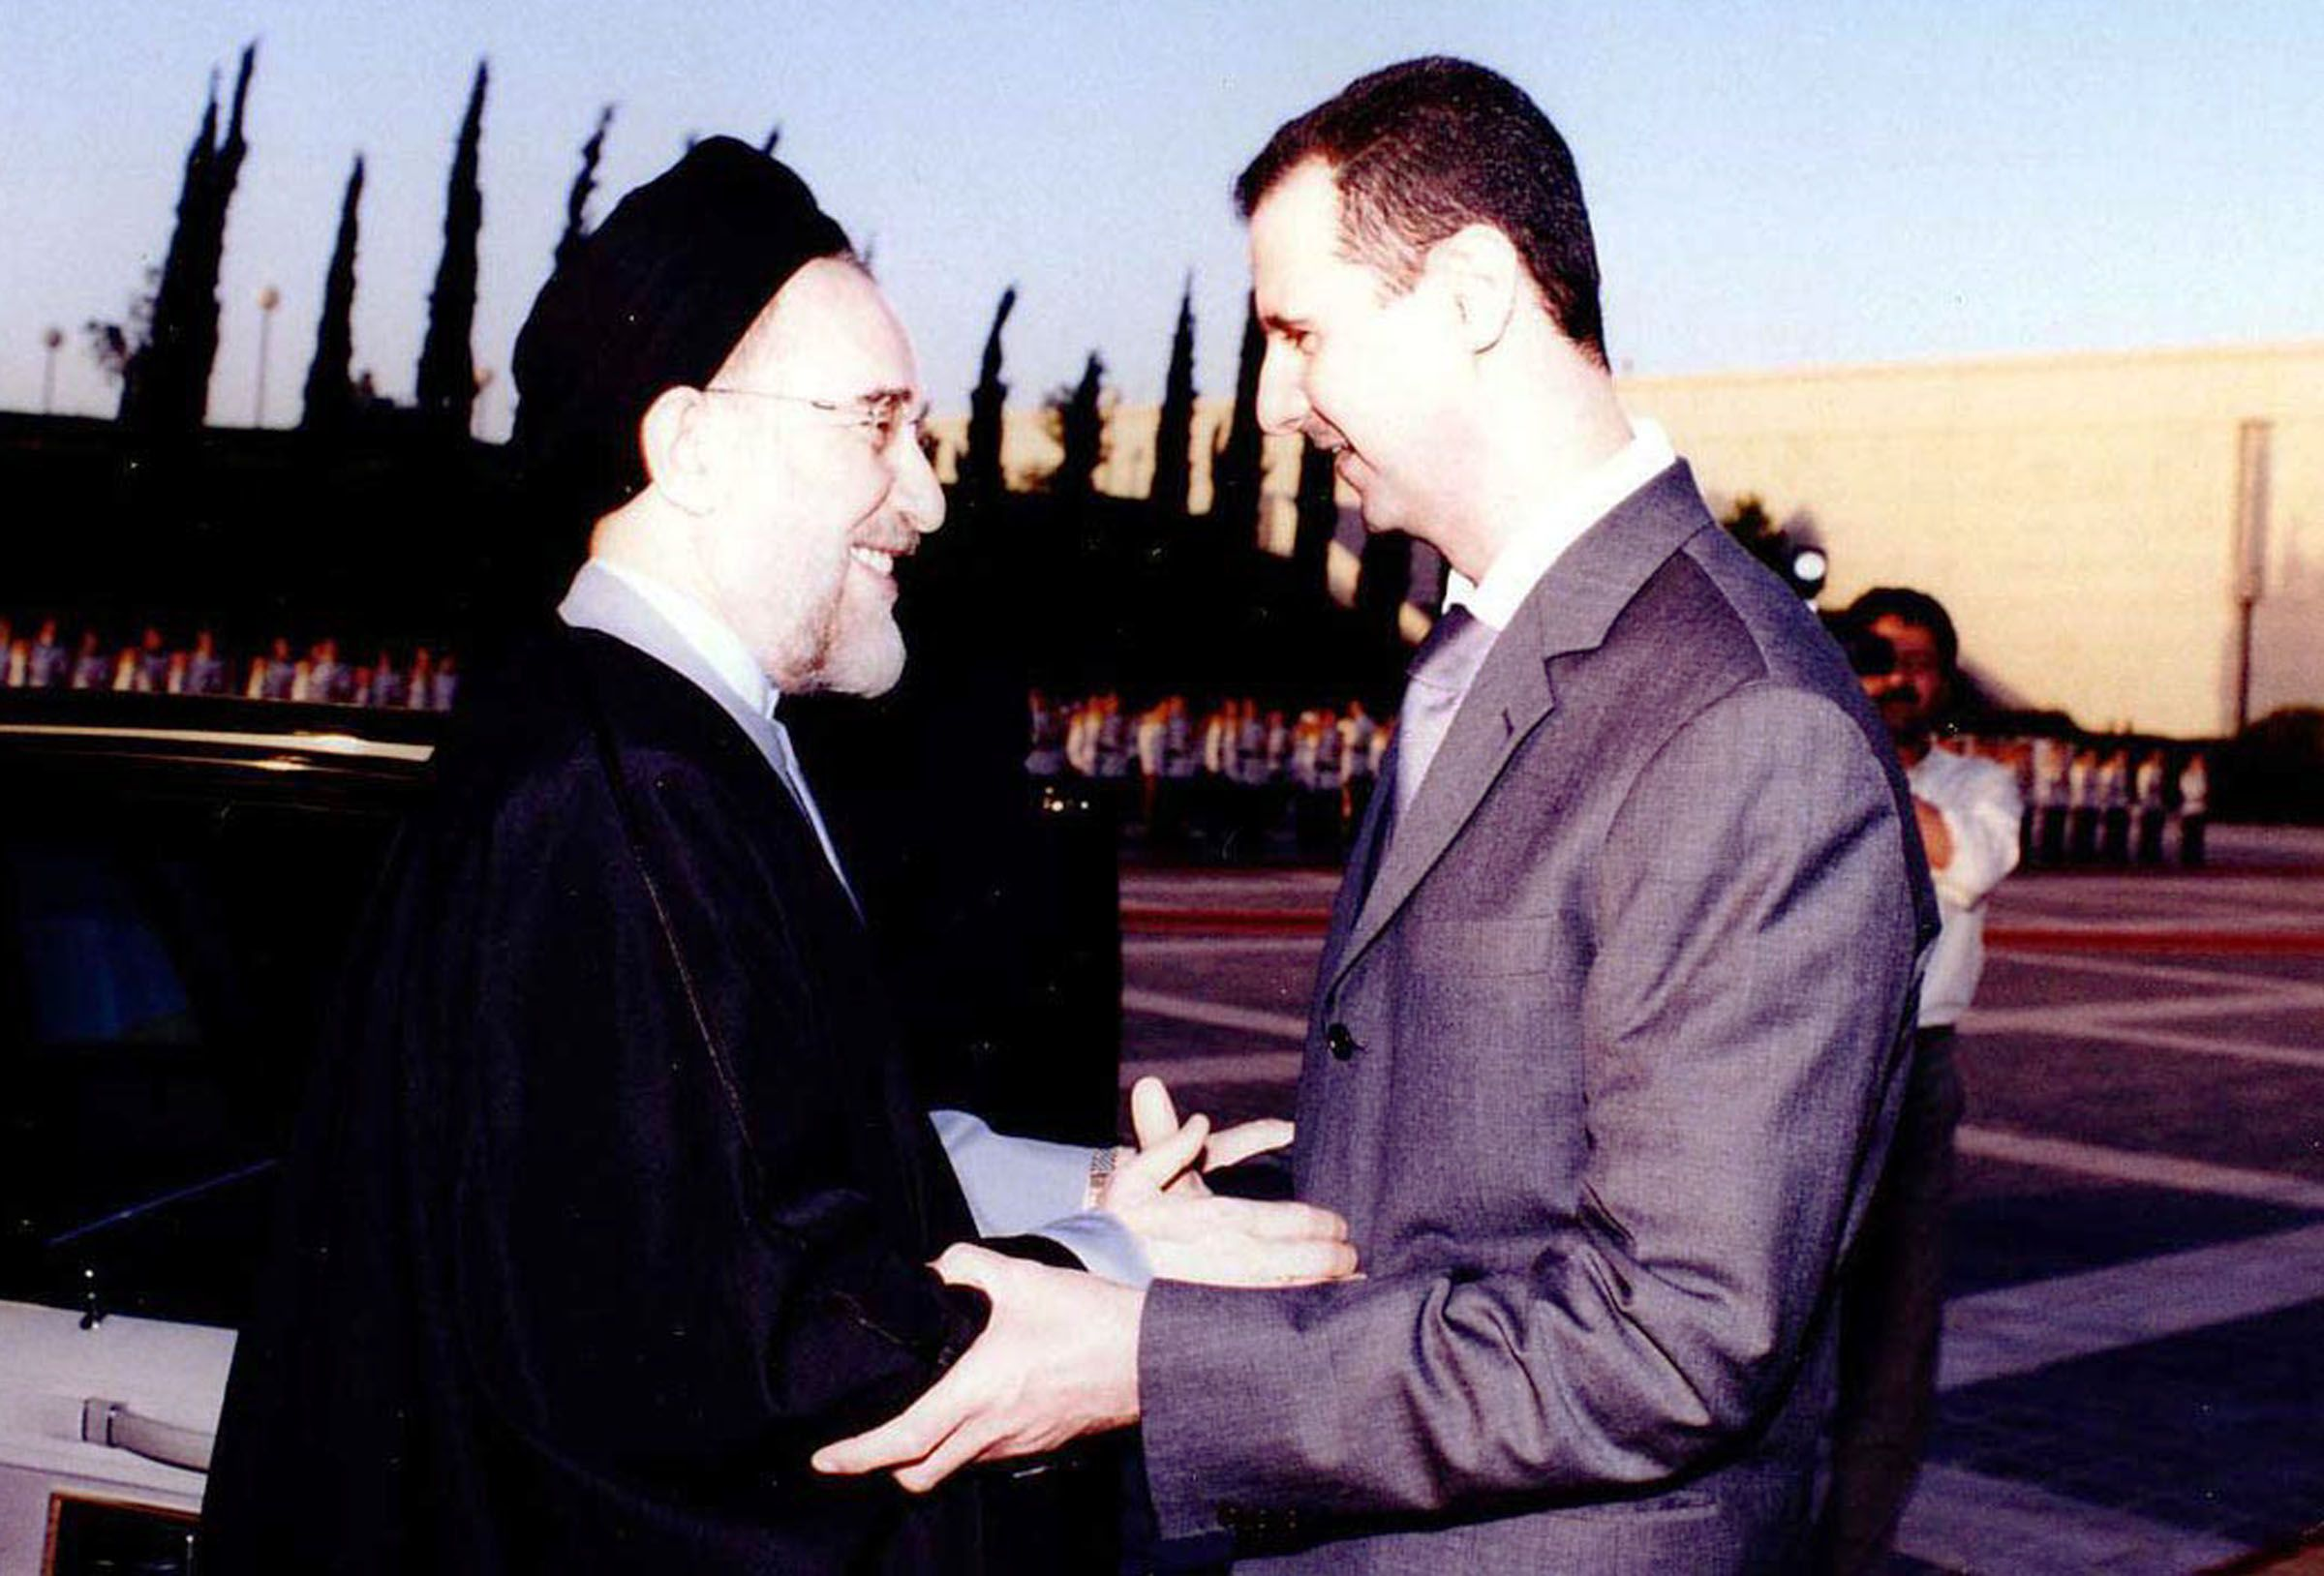 03_23_Assad_Syria_01